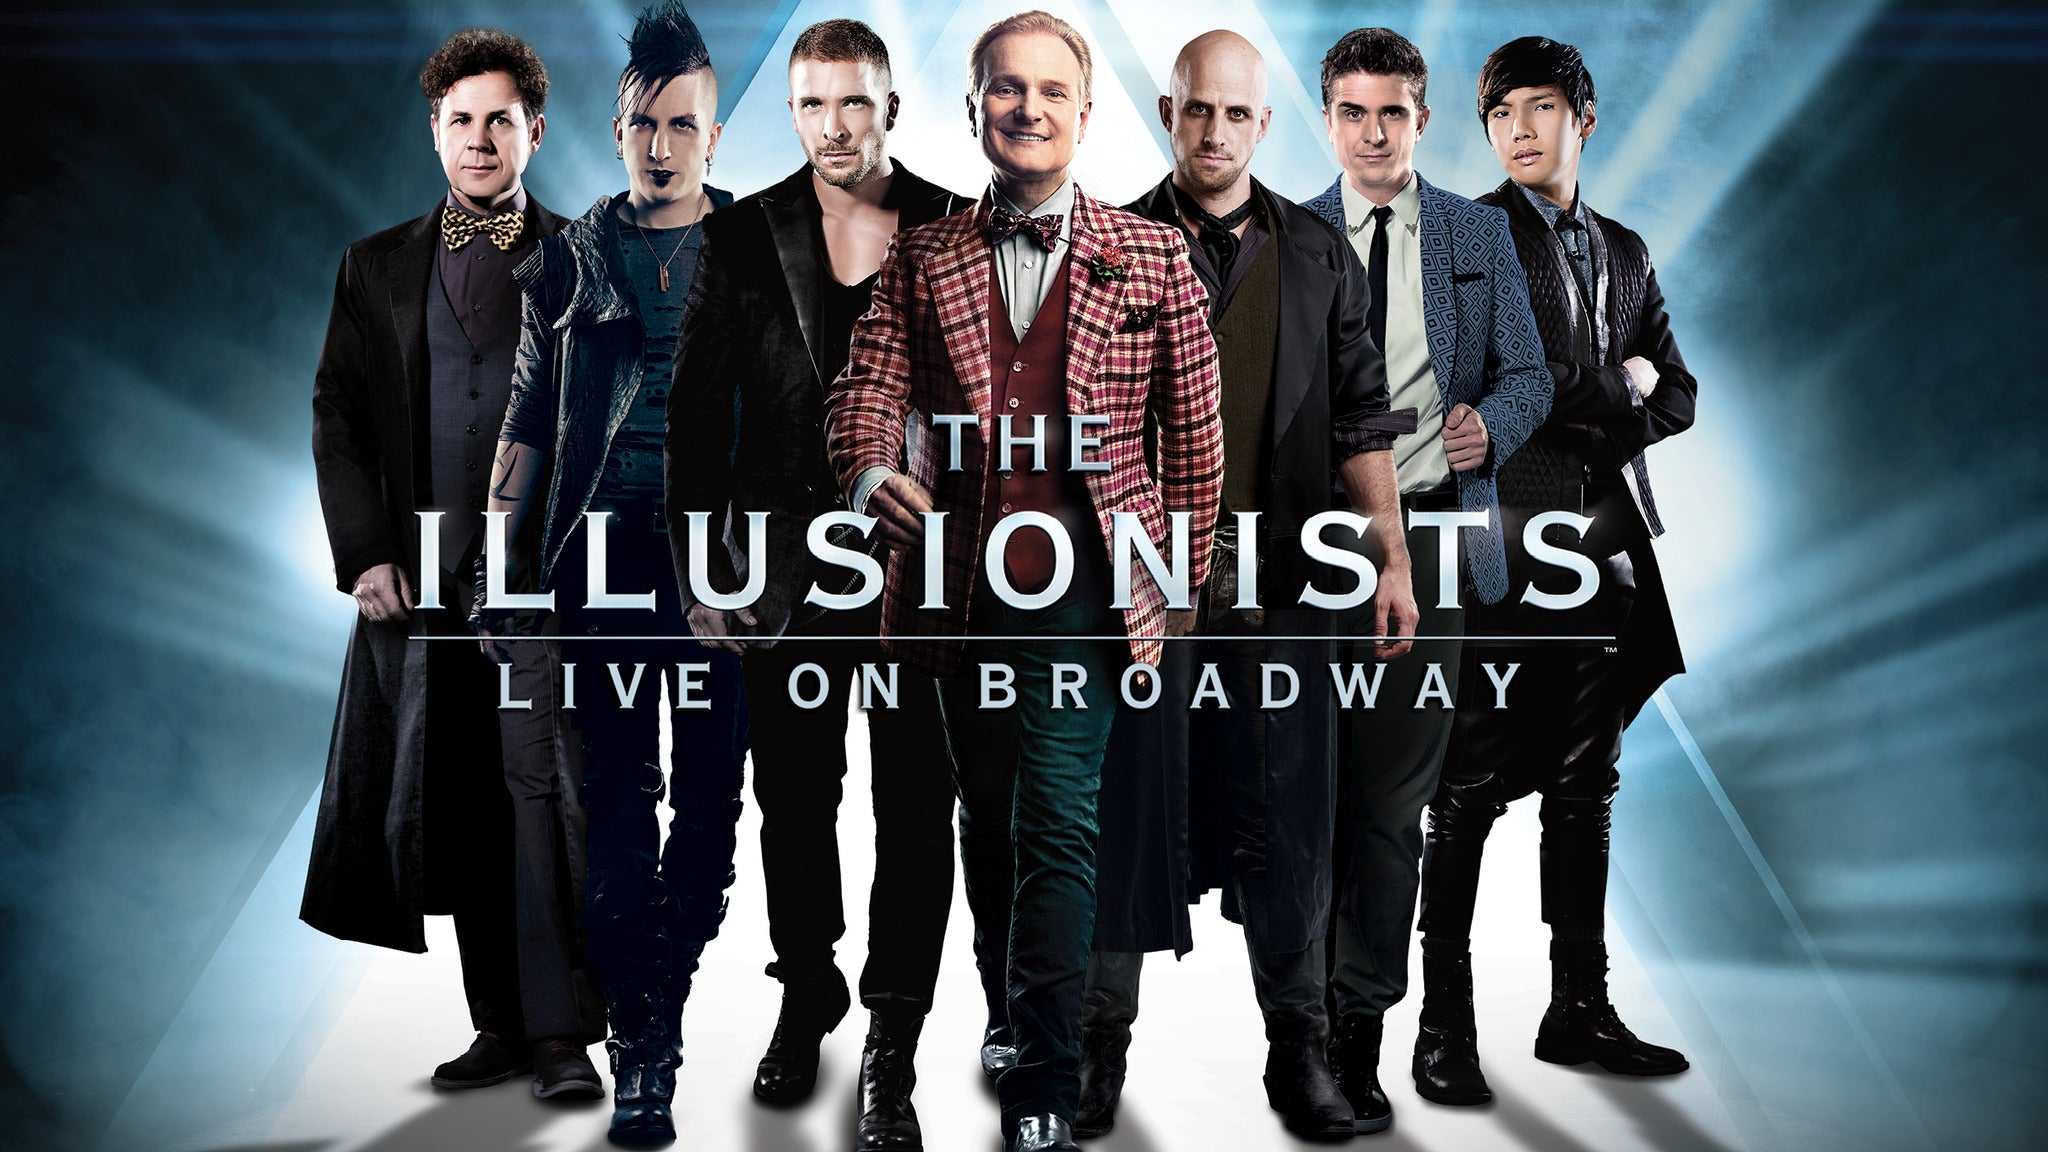 The Illusionists - Live On Broadway at BJCC Concert Hall - Birmingham, AL 35203